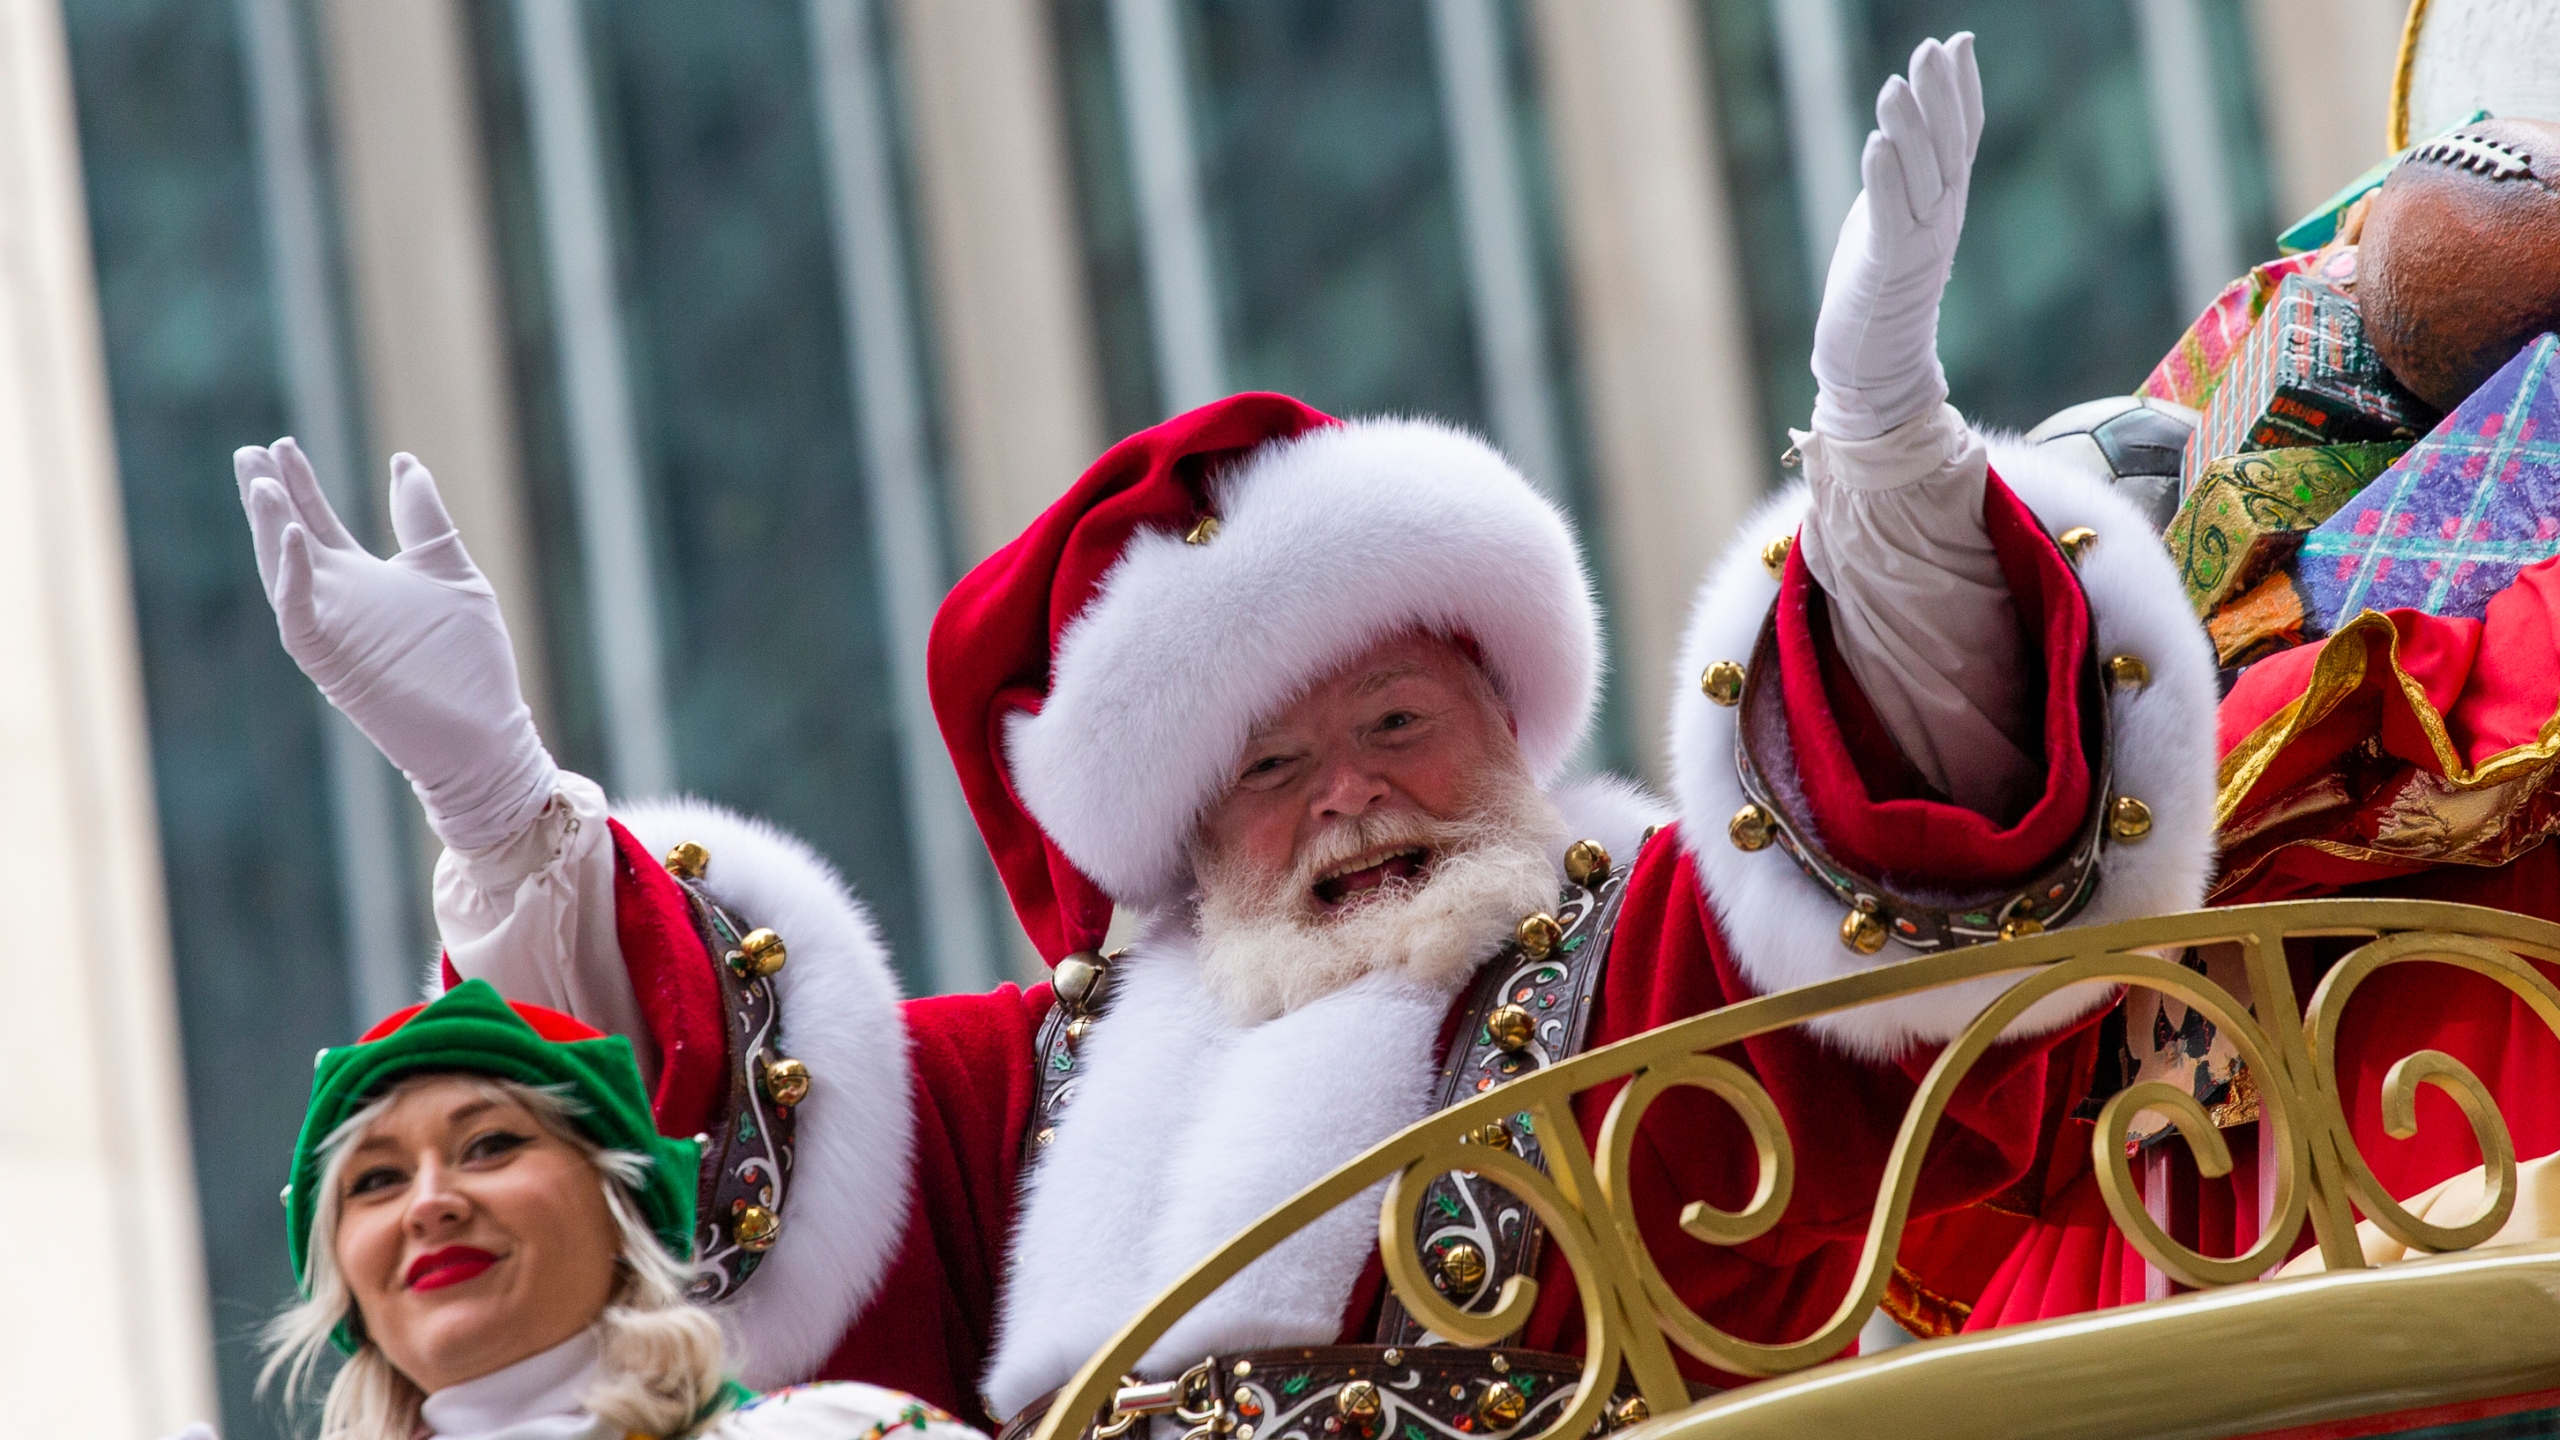 Santa Claus won't be coming to flagship Macy's in NYC this year